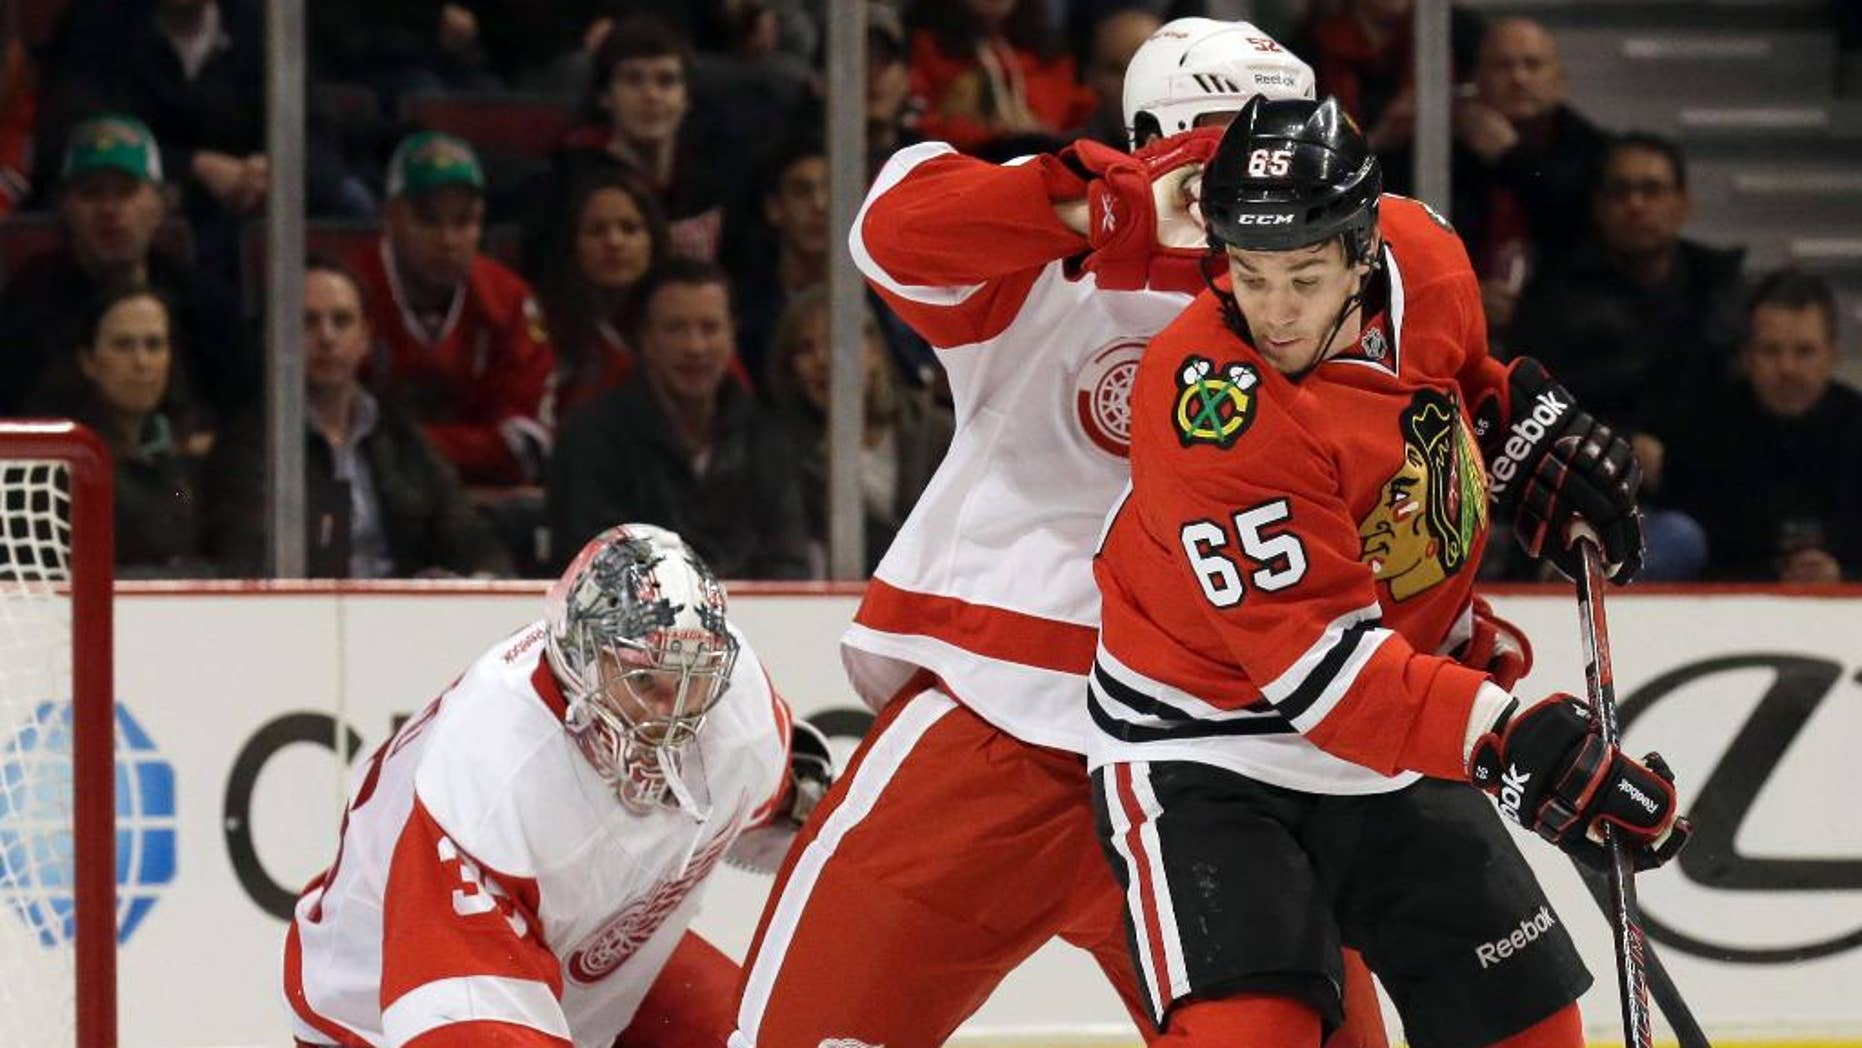 Chicago Blackhawks' Andrew Shaw (65), right, controls the puck against Detroit Red Wings' Jonathan Ericsson, center, and goalie Jimmy Howard (35) during the second period of an NHL hockey game in Chicago, Sunday, March 16, 2014. (AP Photo/Nam Y. Huh)